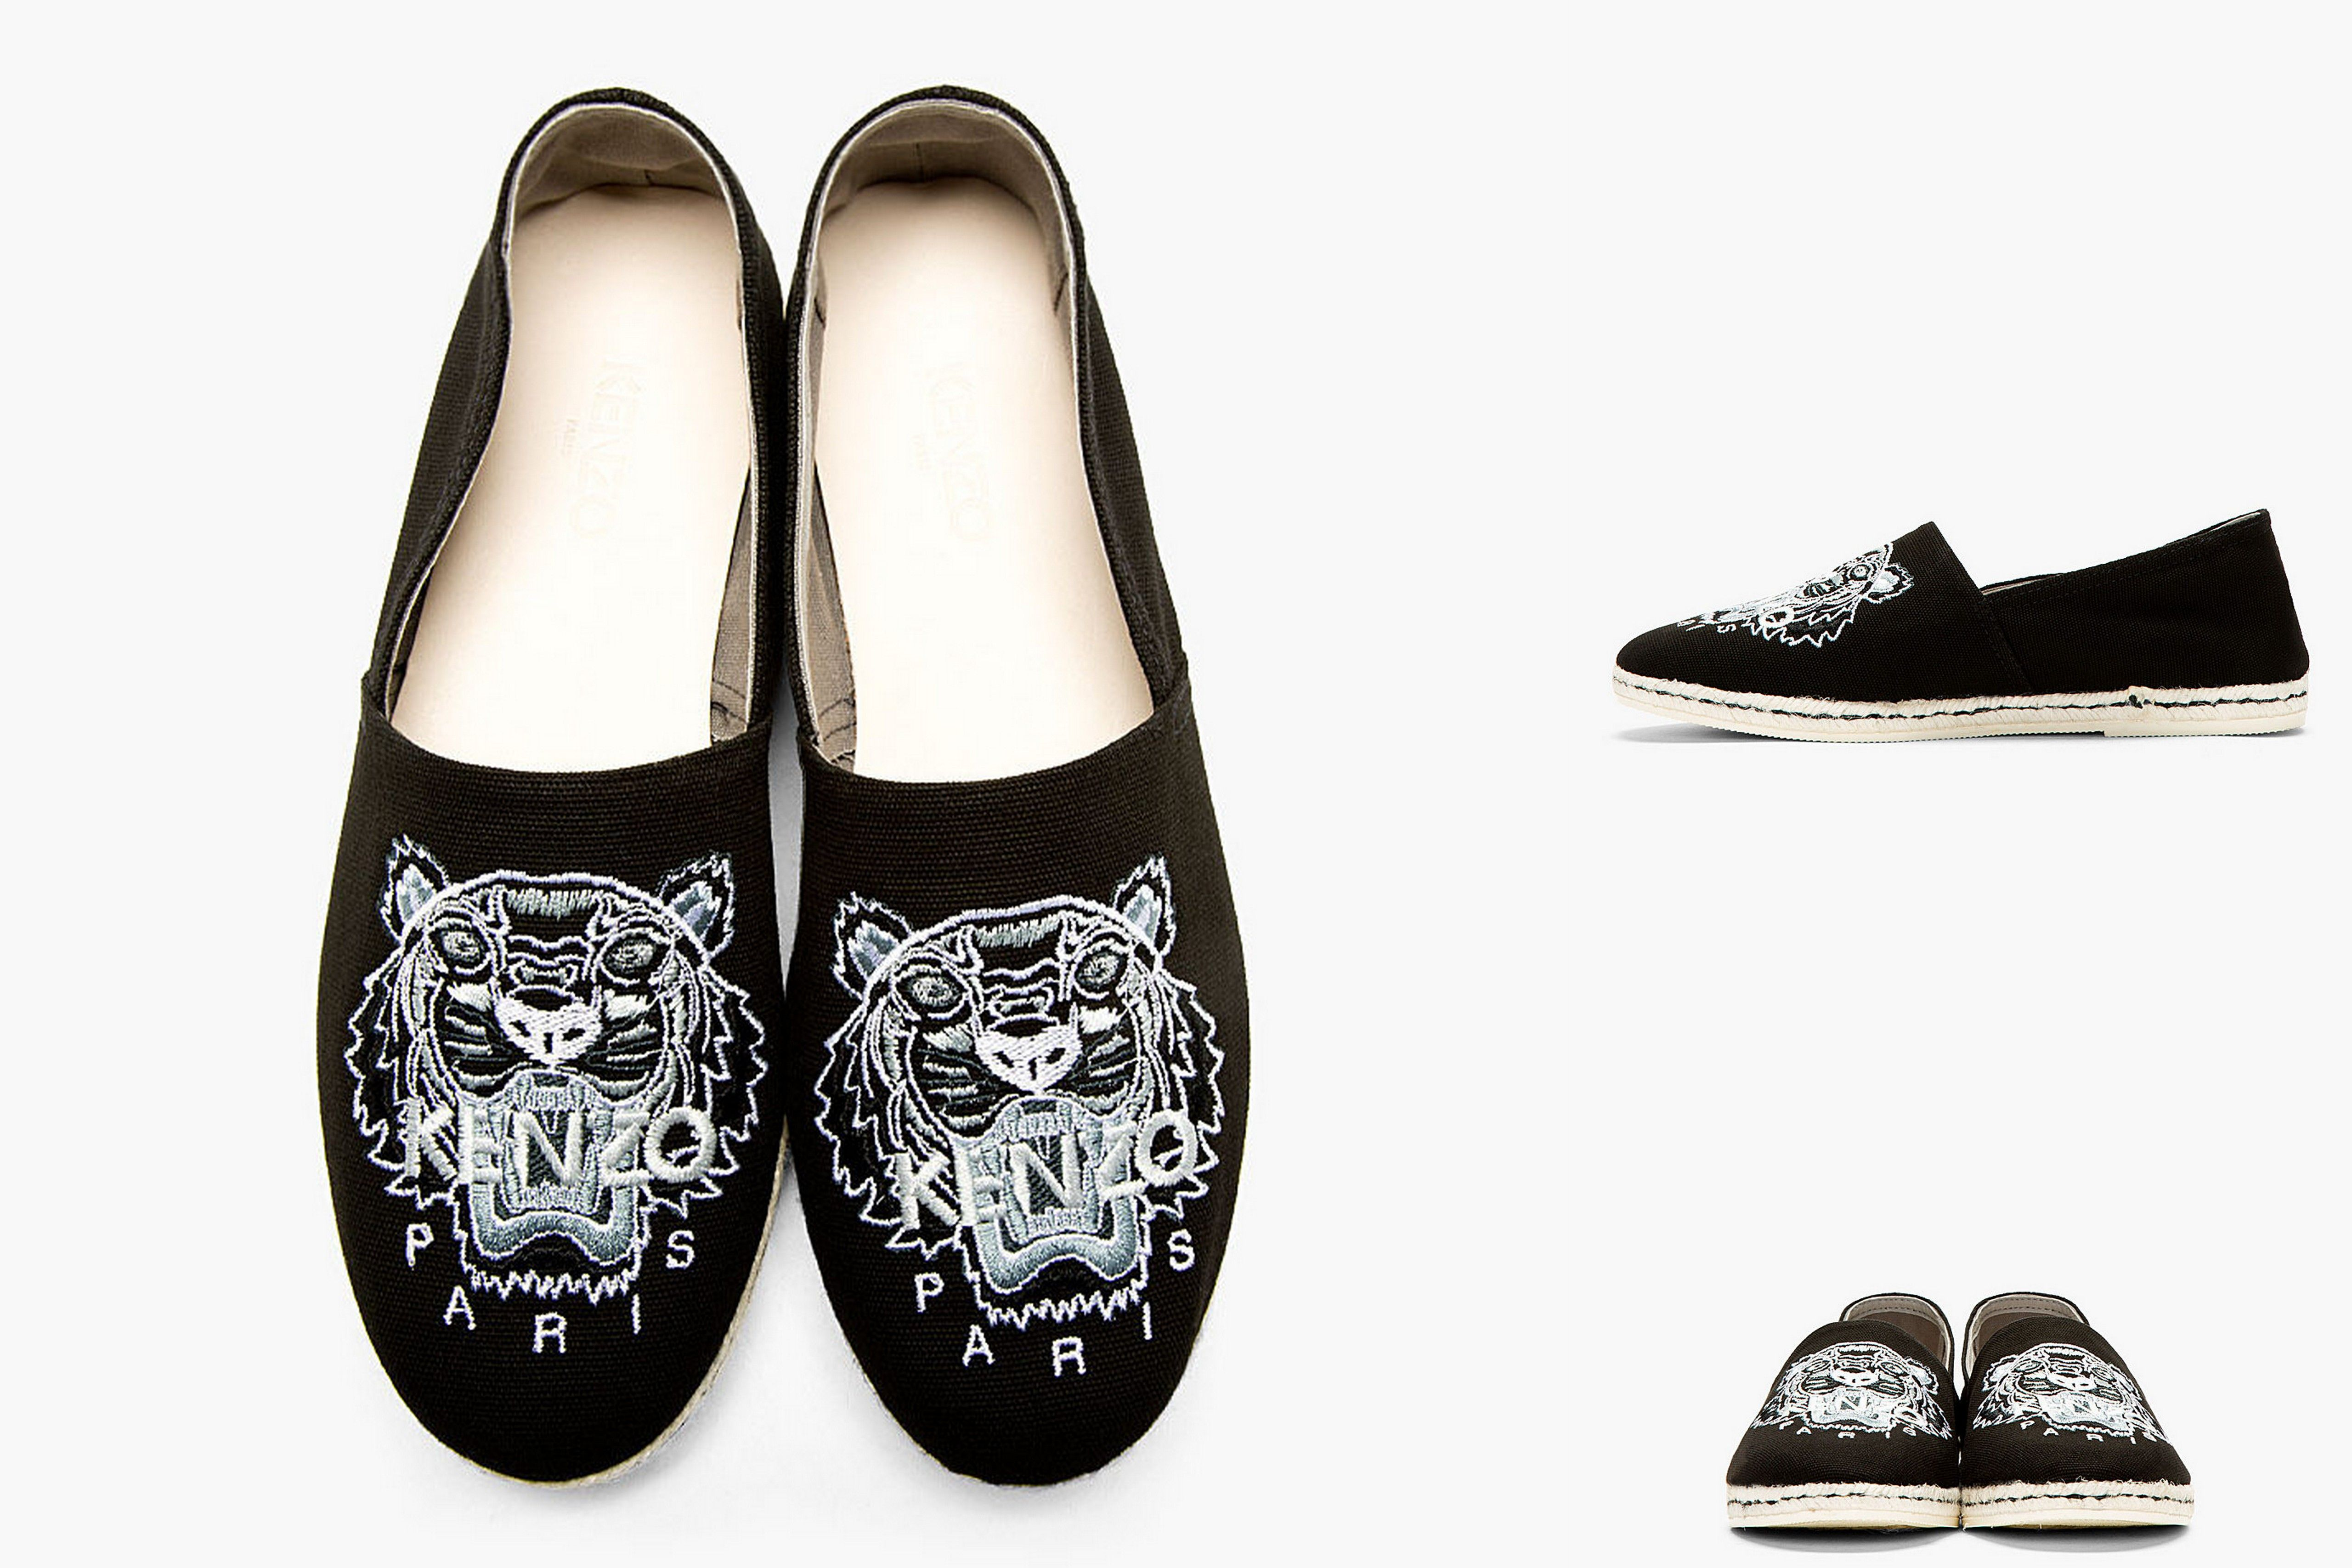 73f1fb55d8d Finds: Kenzo Black & White Embroidered Tiger Spoon Espadrilles - http://